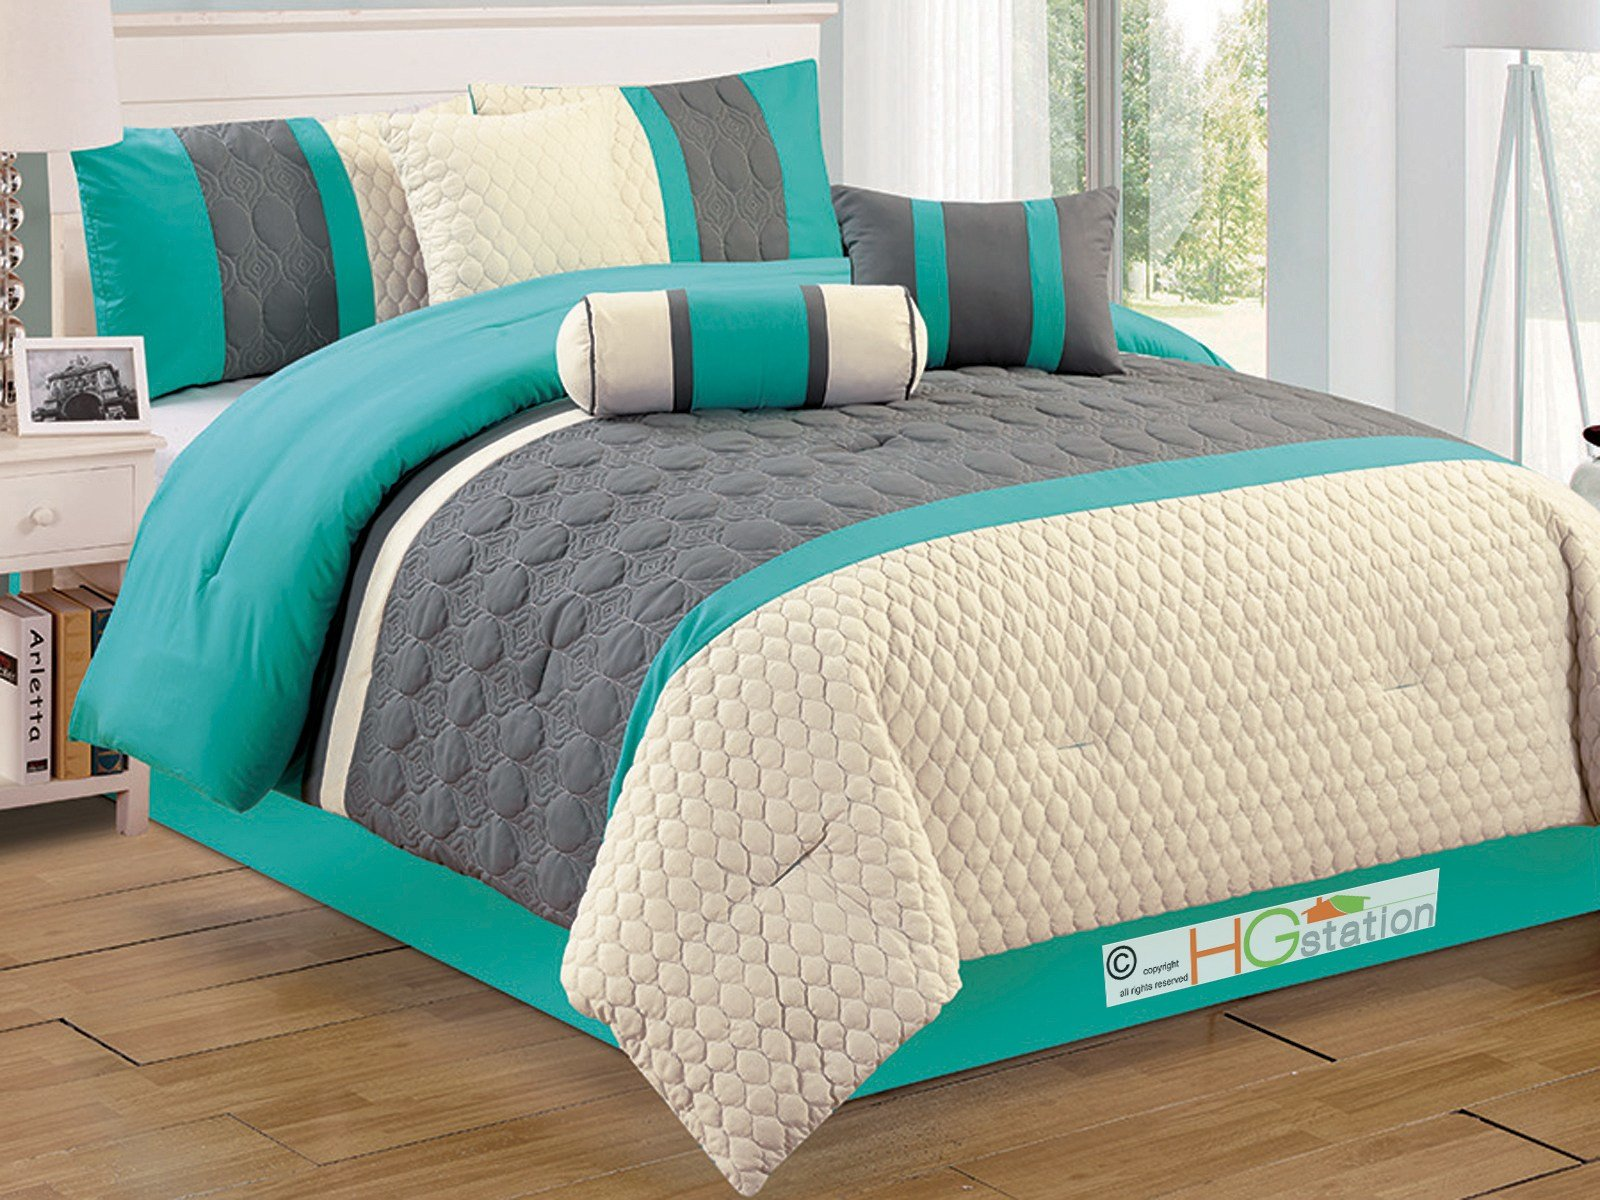 Best 7 P Dani Quilted Trellis Geometric Comforter Set Gray With Pictures